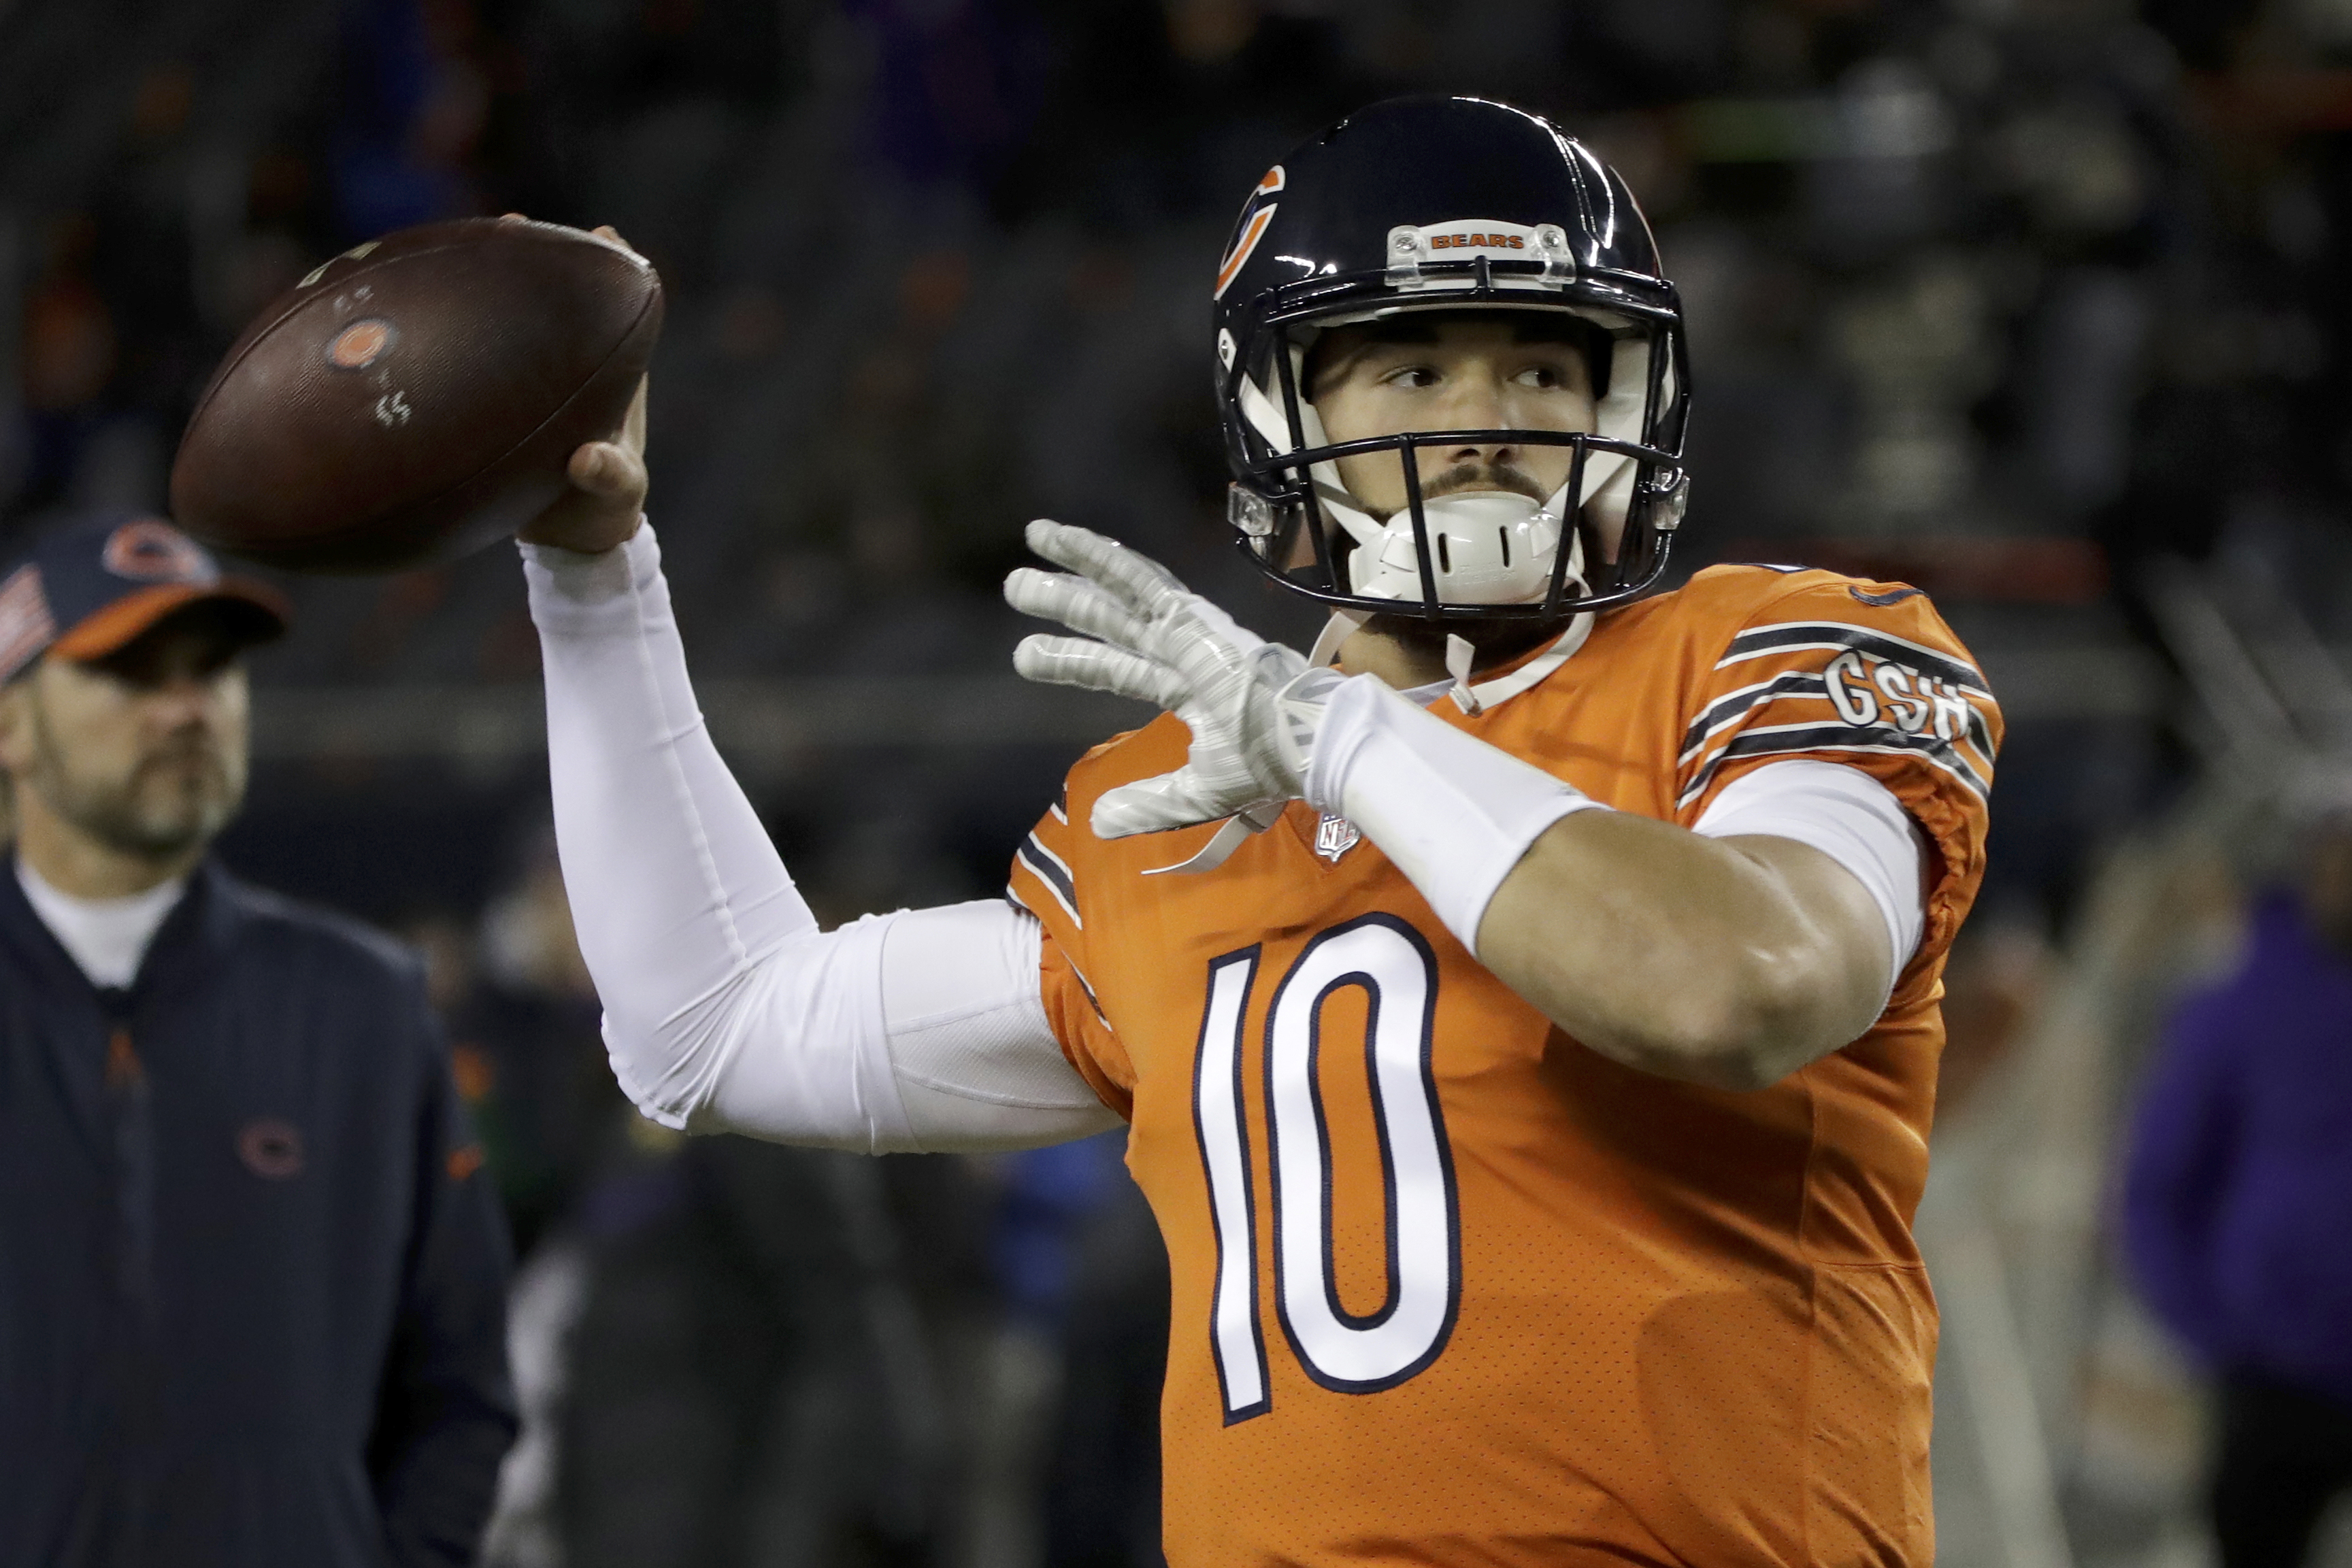 Chicago Bears quarterback Mitchell Trubisky (10) warms up before an NFL football game against the Minnesota Vikings.